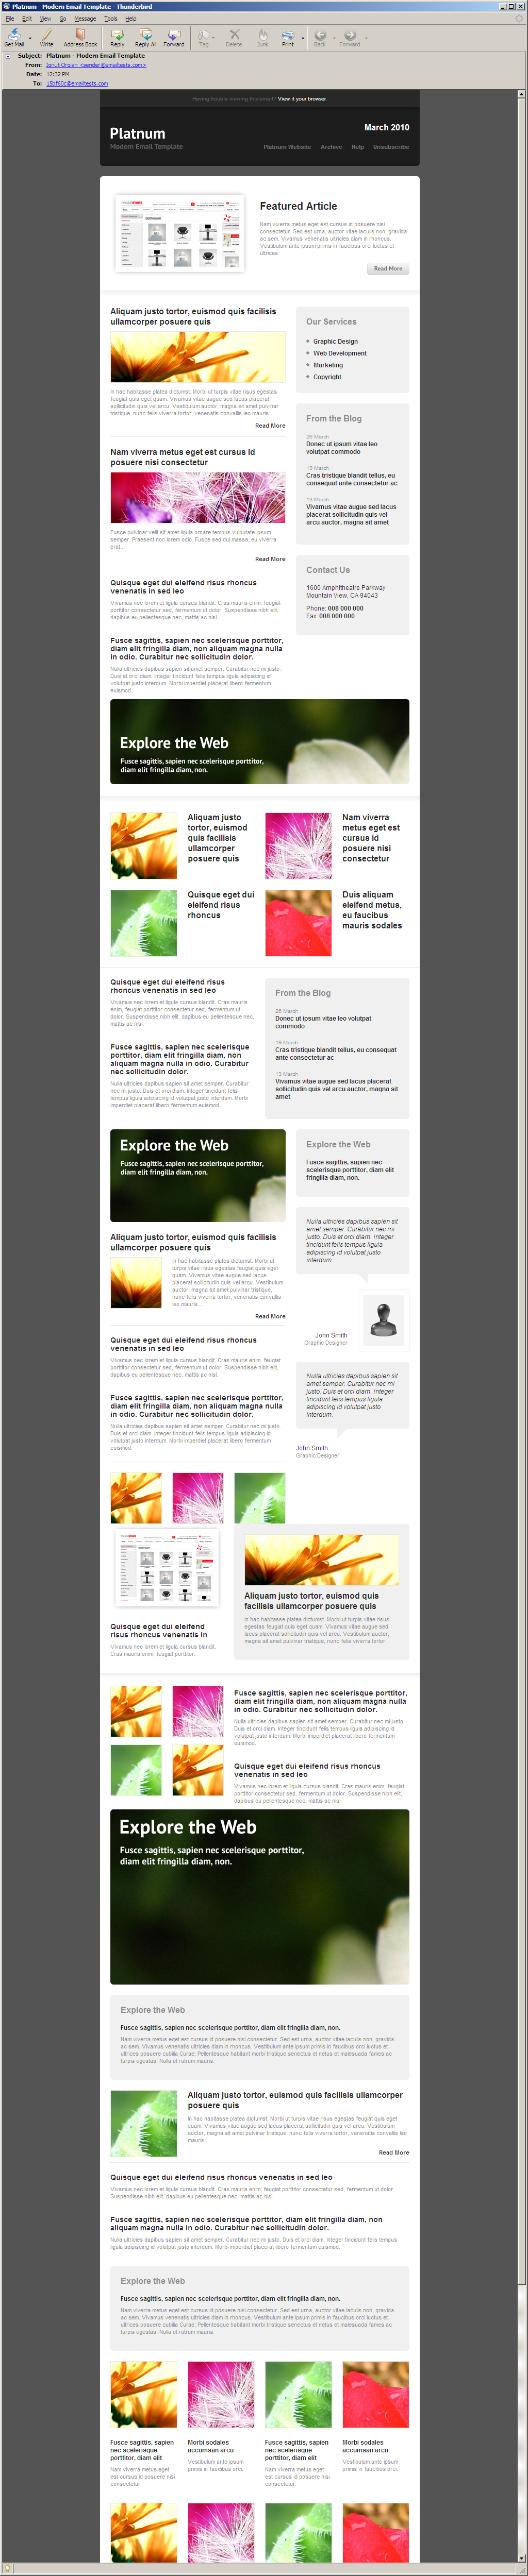 Platnum Email Template, 6 Layouts, 8 Colors - Thunderbird 3.0 - All elements listed.